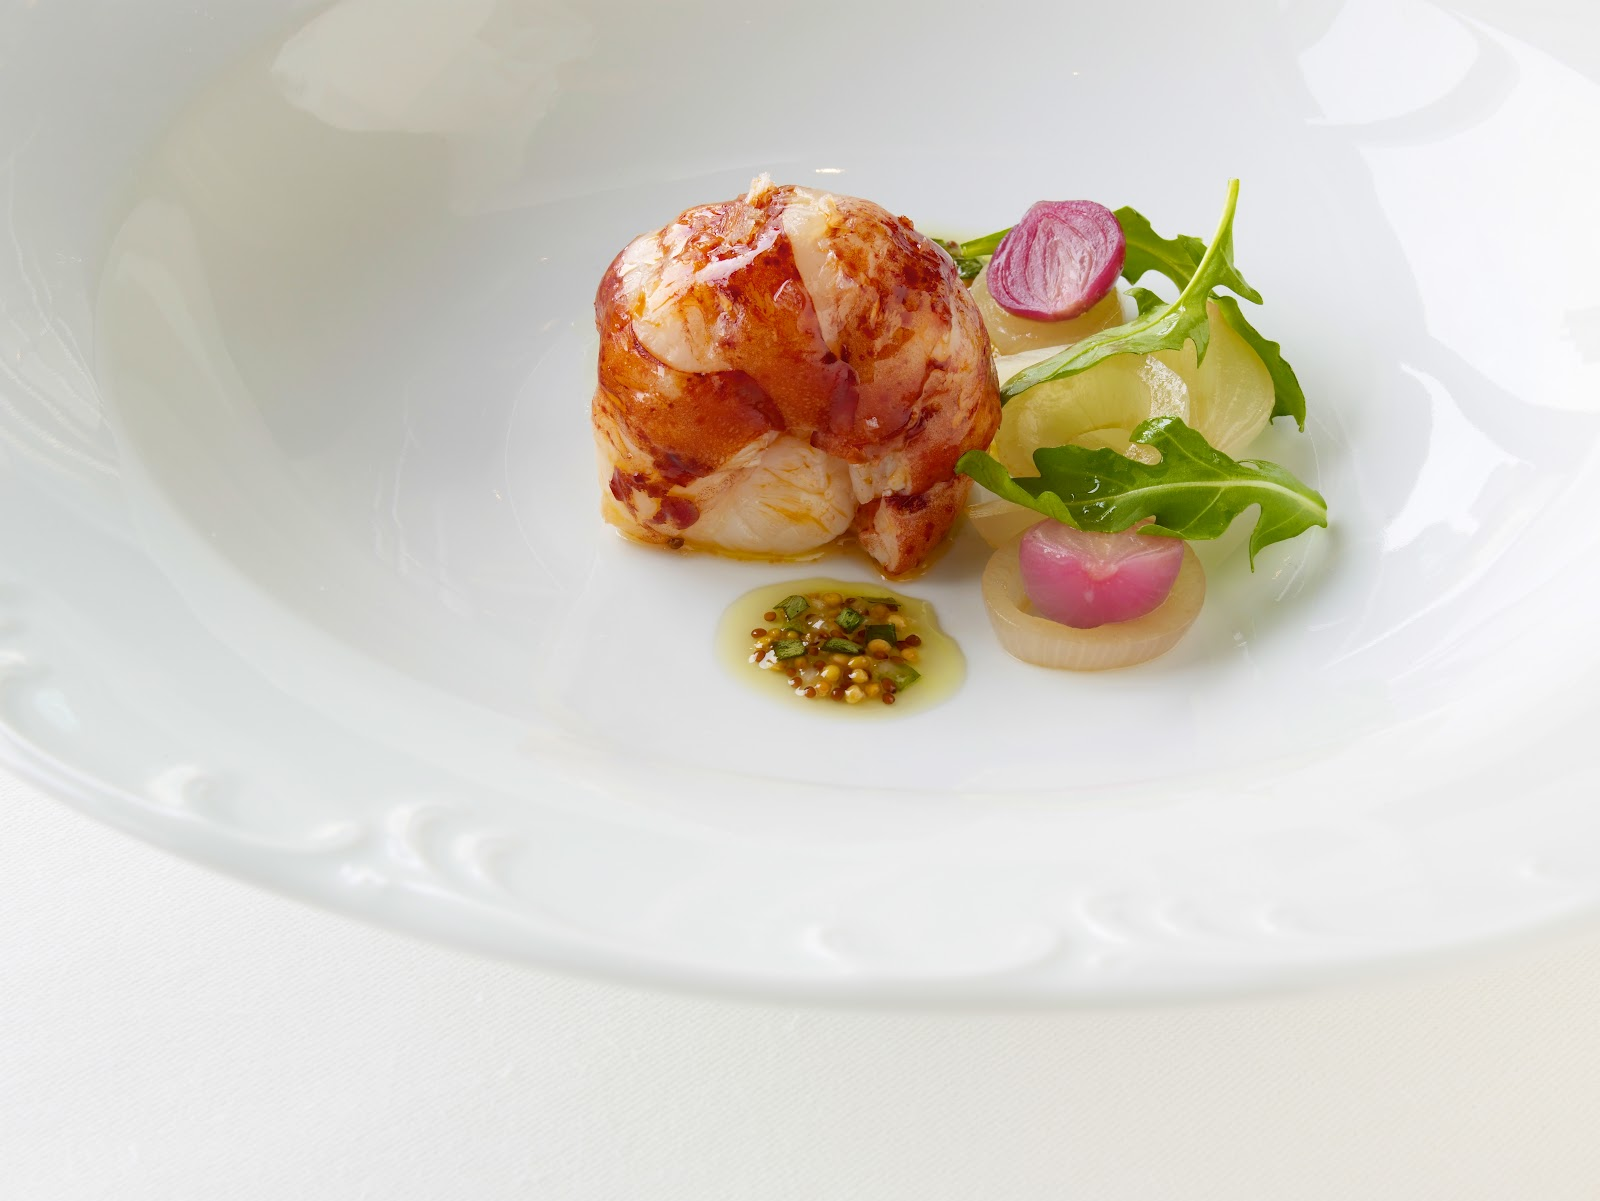 Argus Guide - Per Se - Butter Poached Nova Scotia Lobster